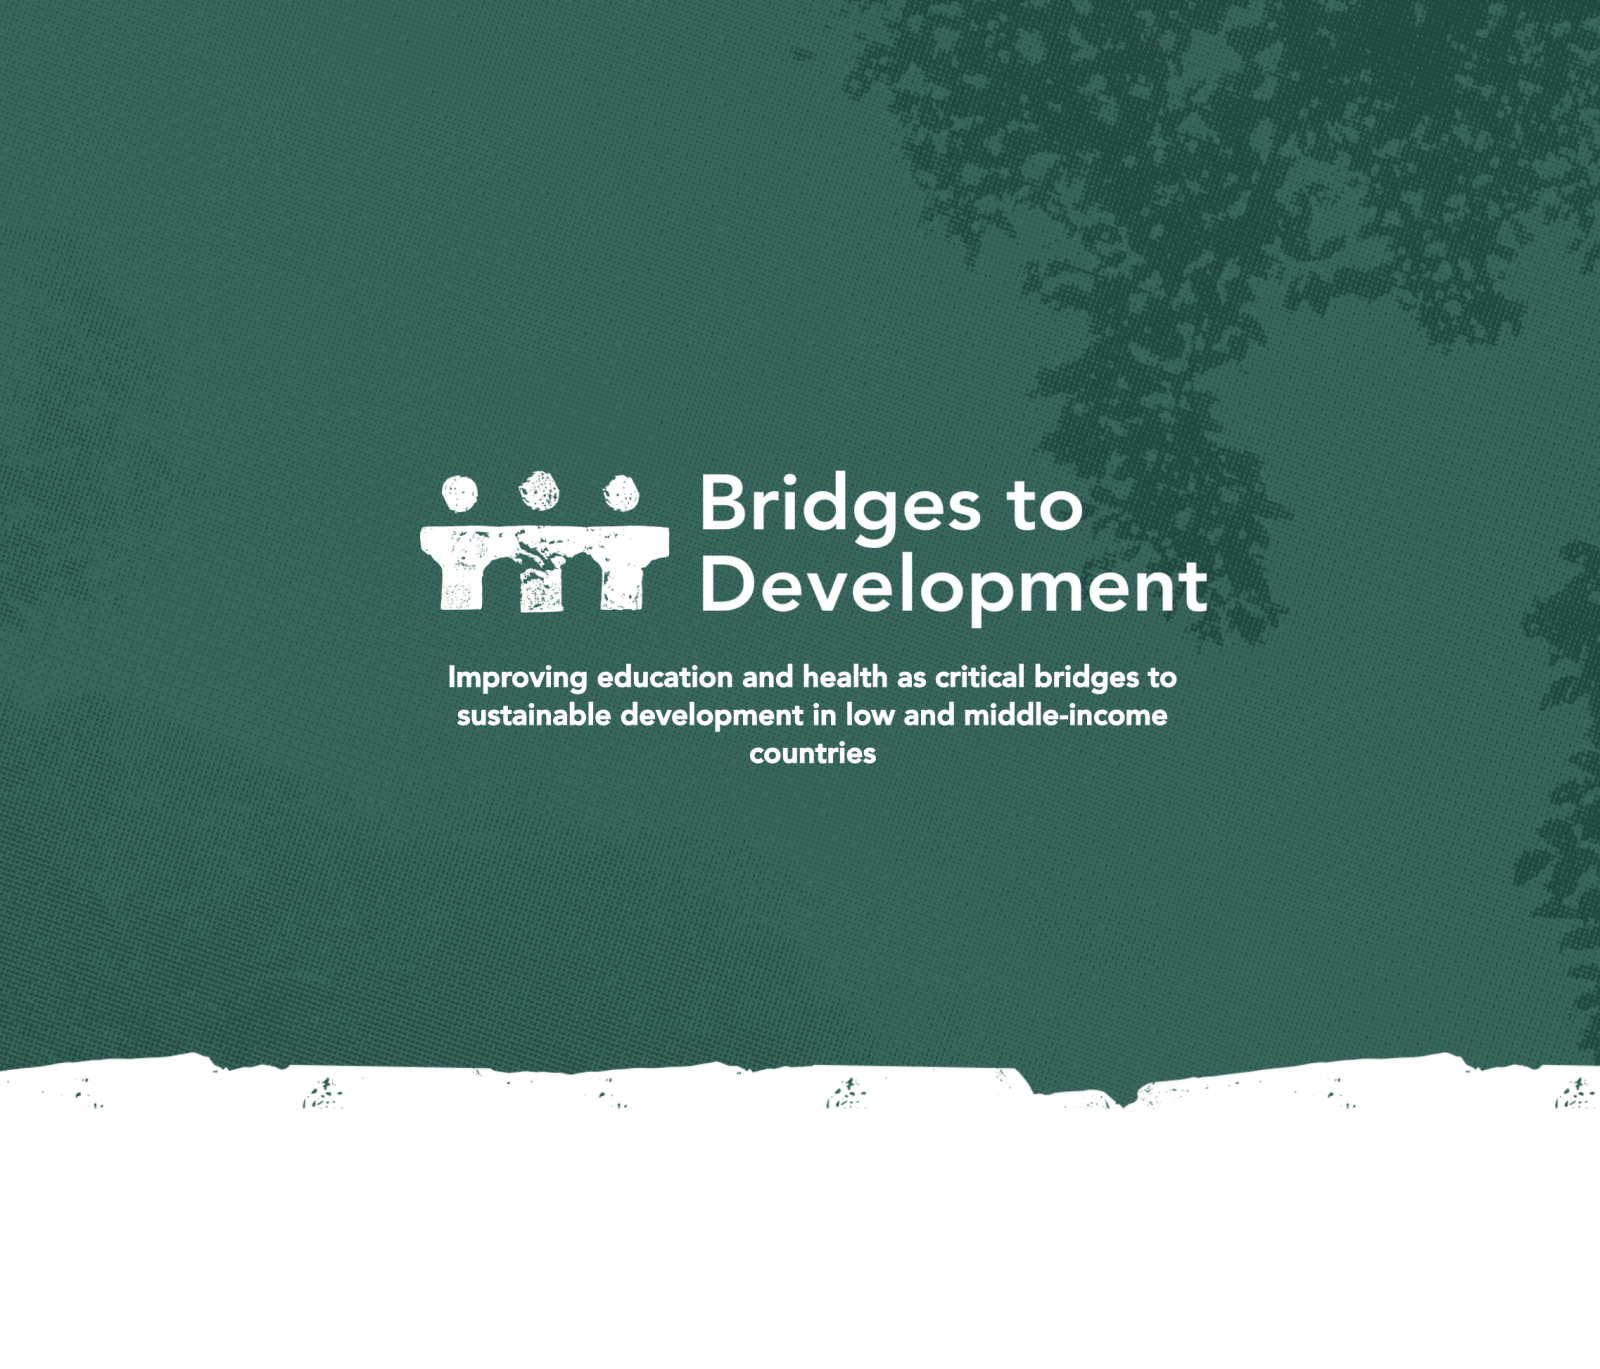 bridges-cover-3.png